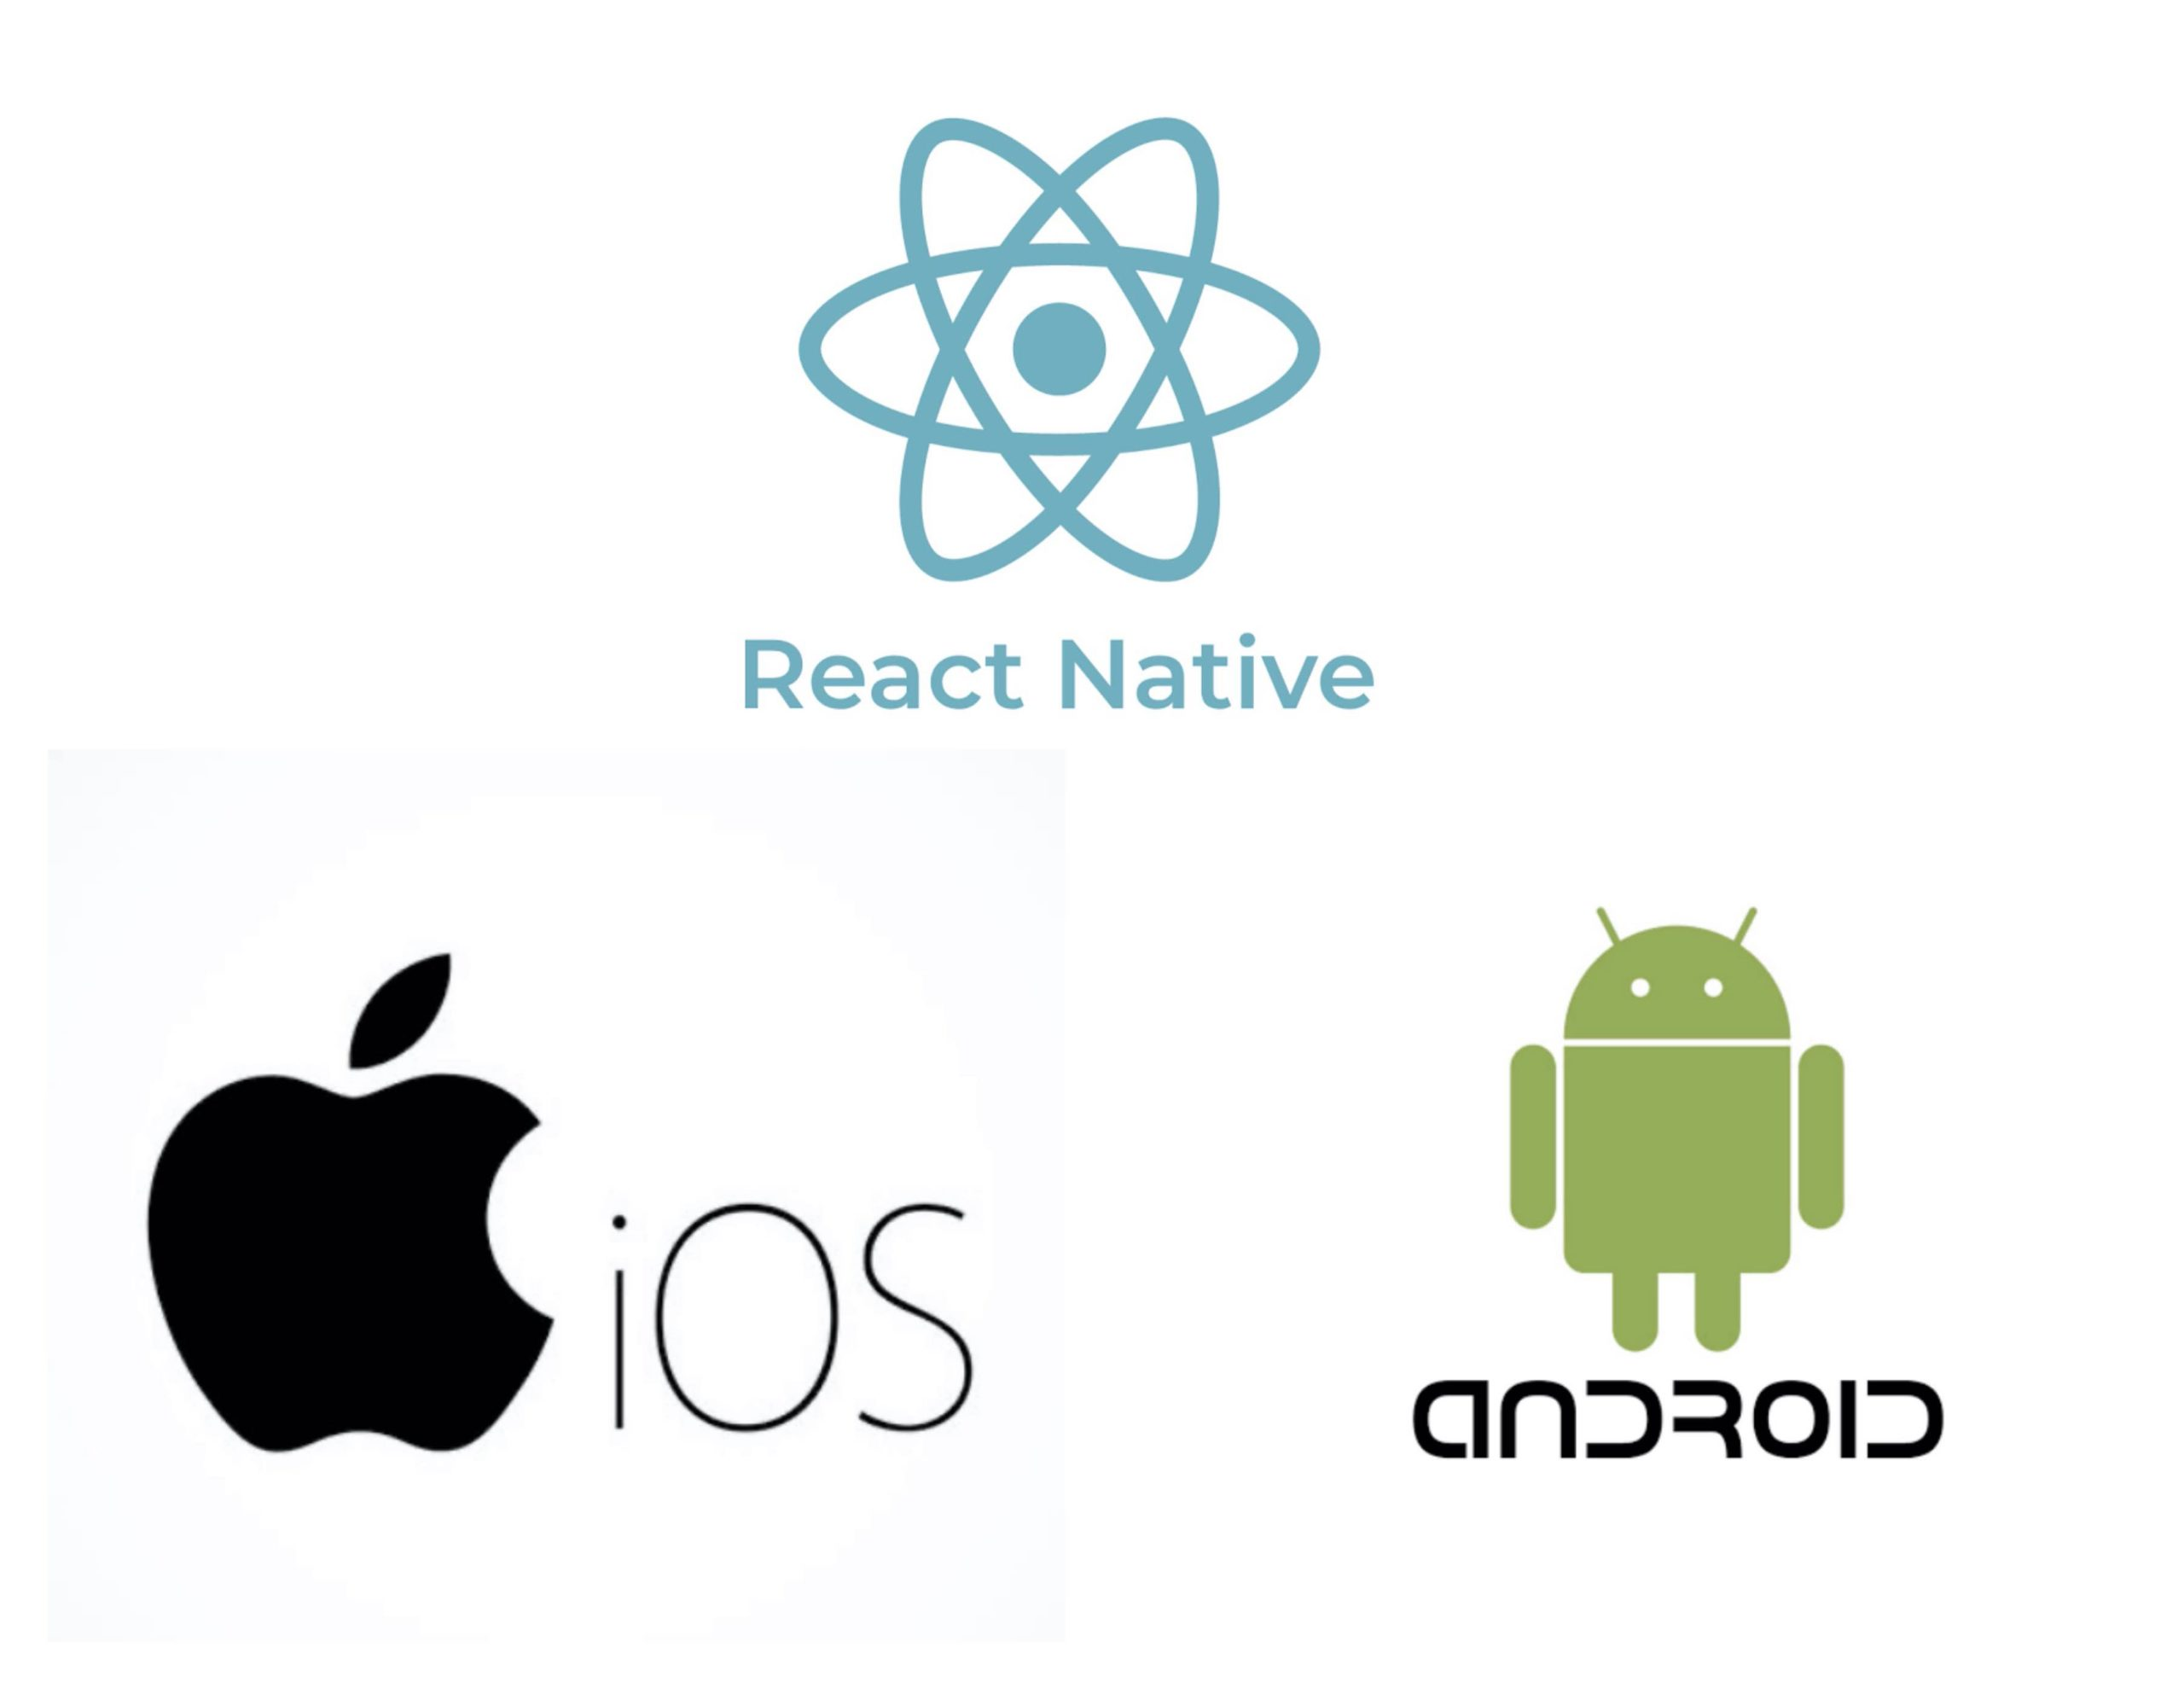 iOS, Android, React Native